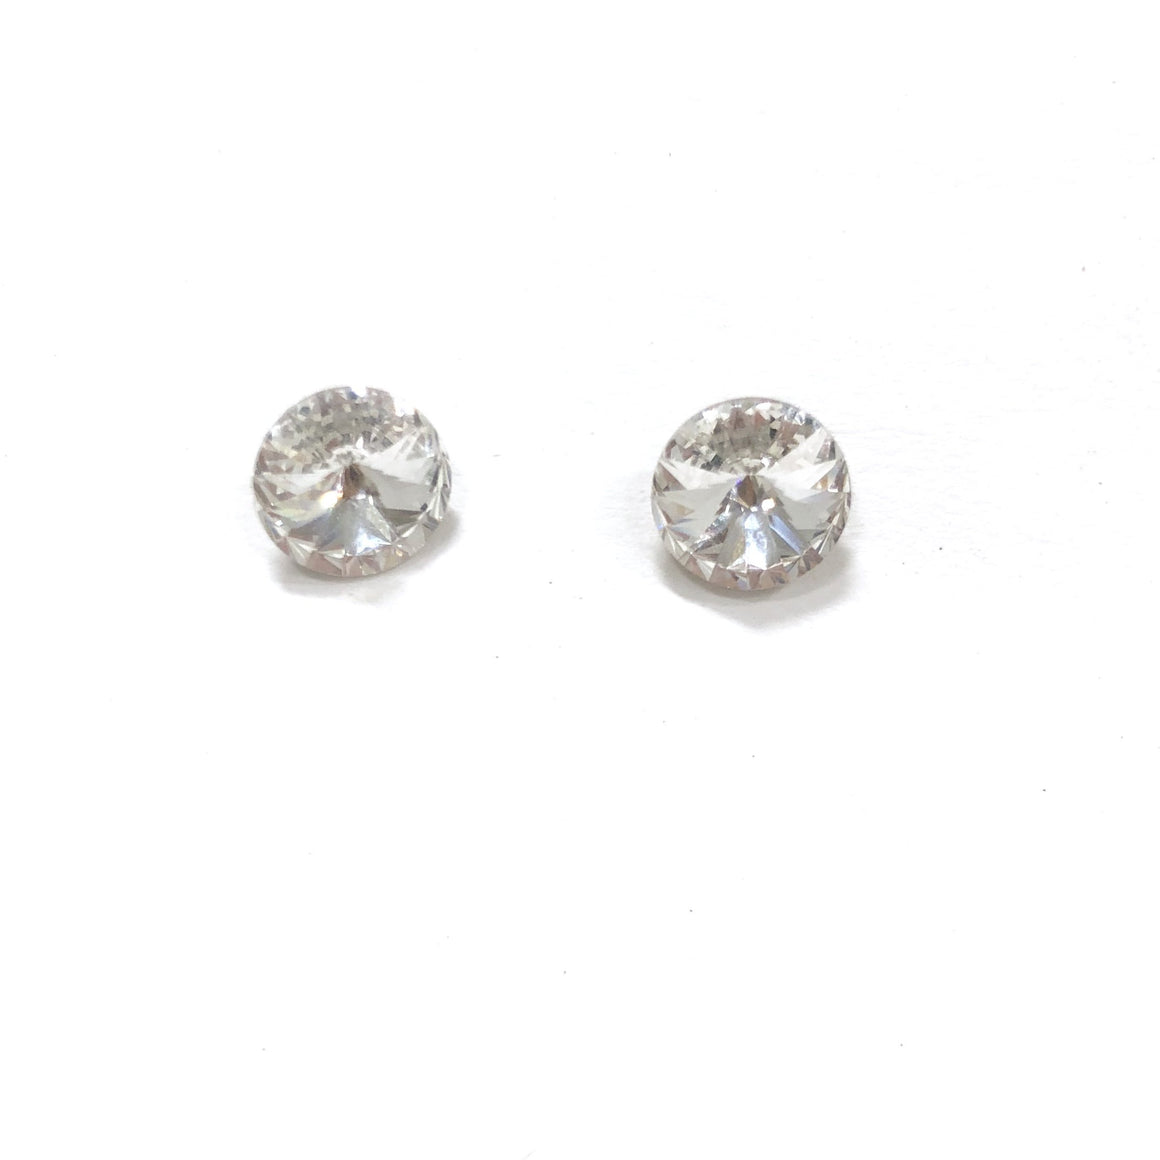 Irresistible Iridescent Stud Earring in Silver